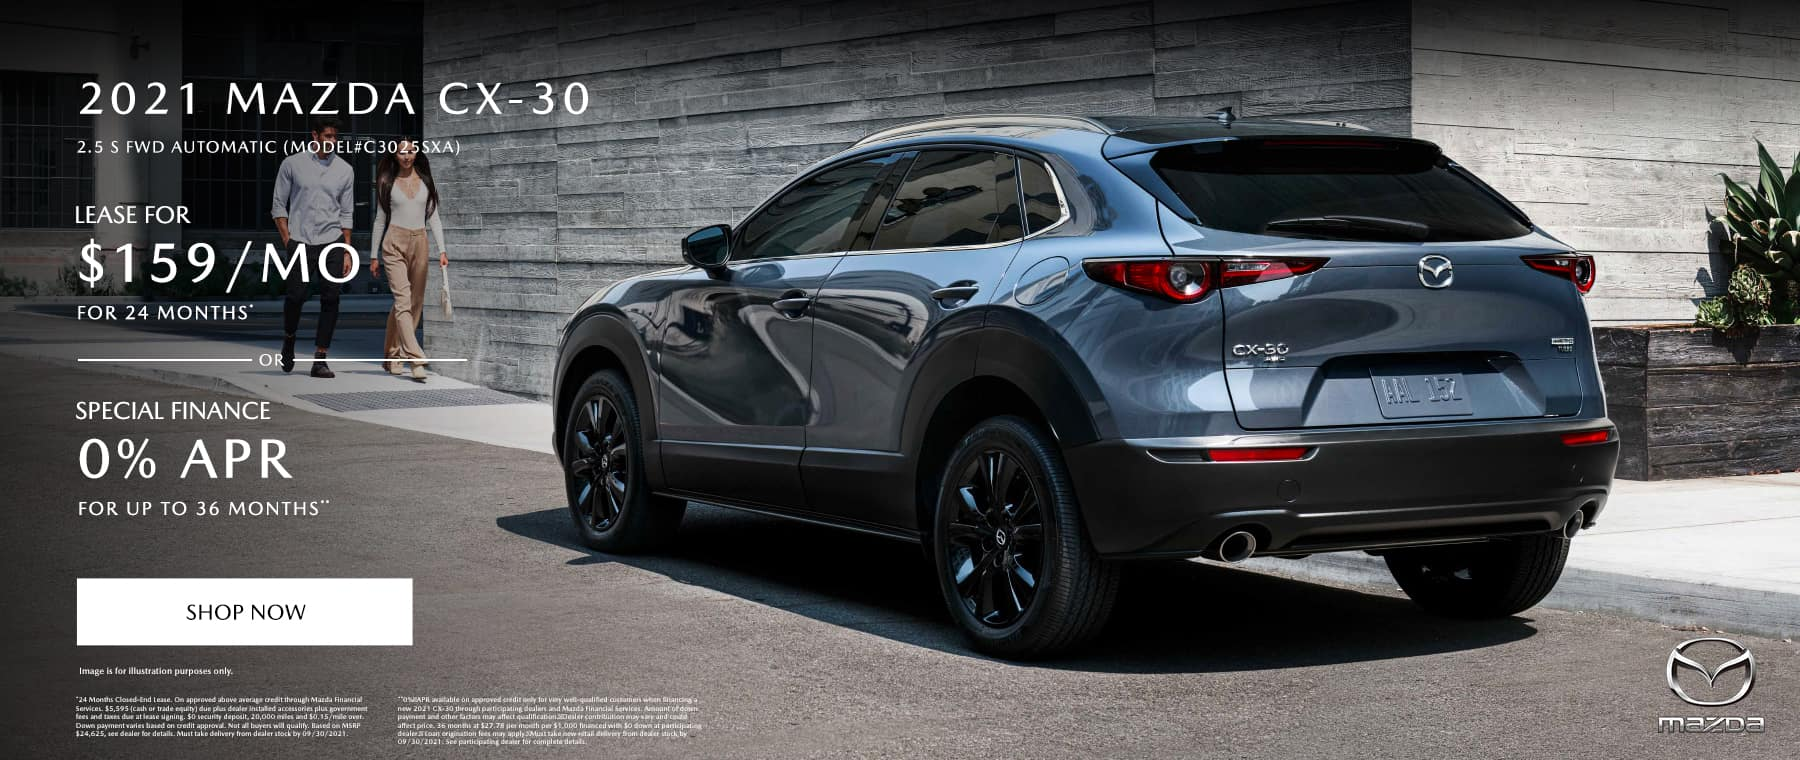 2021 MAZDA CX-30 2.5 S AWD AUTOMATIC (MODEL#C3025SXA) Lease Specials: $159/month @ 24 months* OR Special Finance: 0% APR for 36 Months**